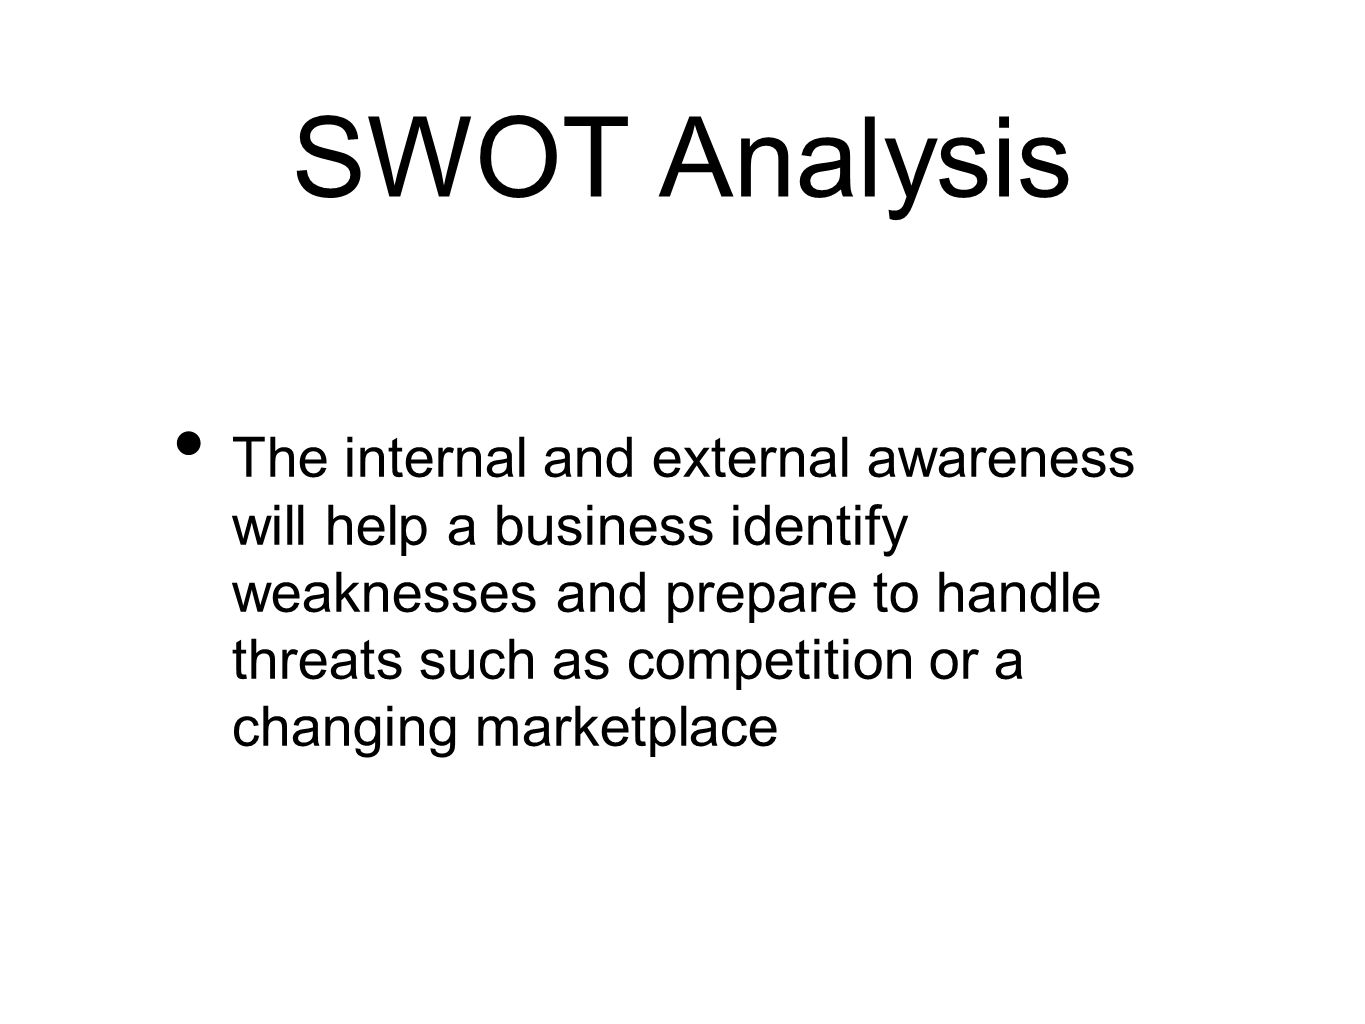 the marketing plan swot analysis good marketing relies on good 4 swot analysis the internal and external awareness will help a business identify weaknesses and prepare to handle threats such as competition or a changing